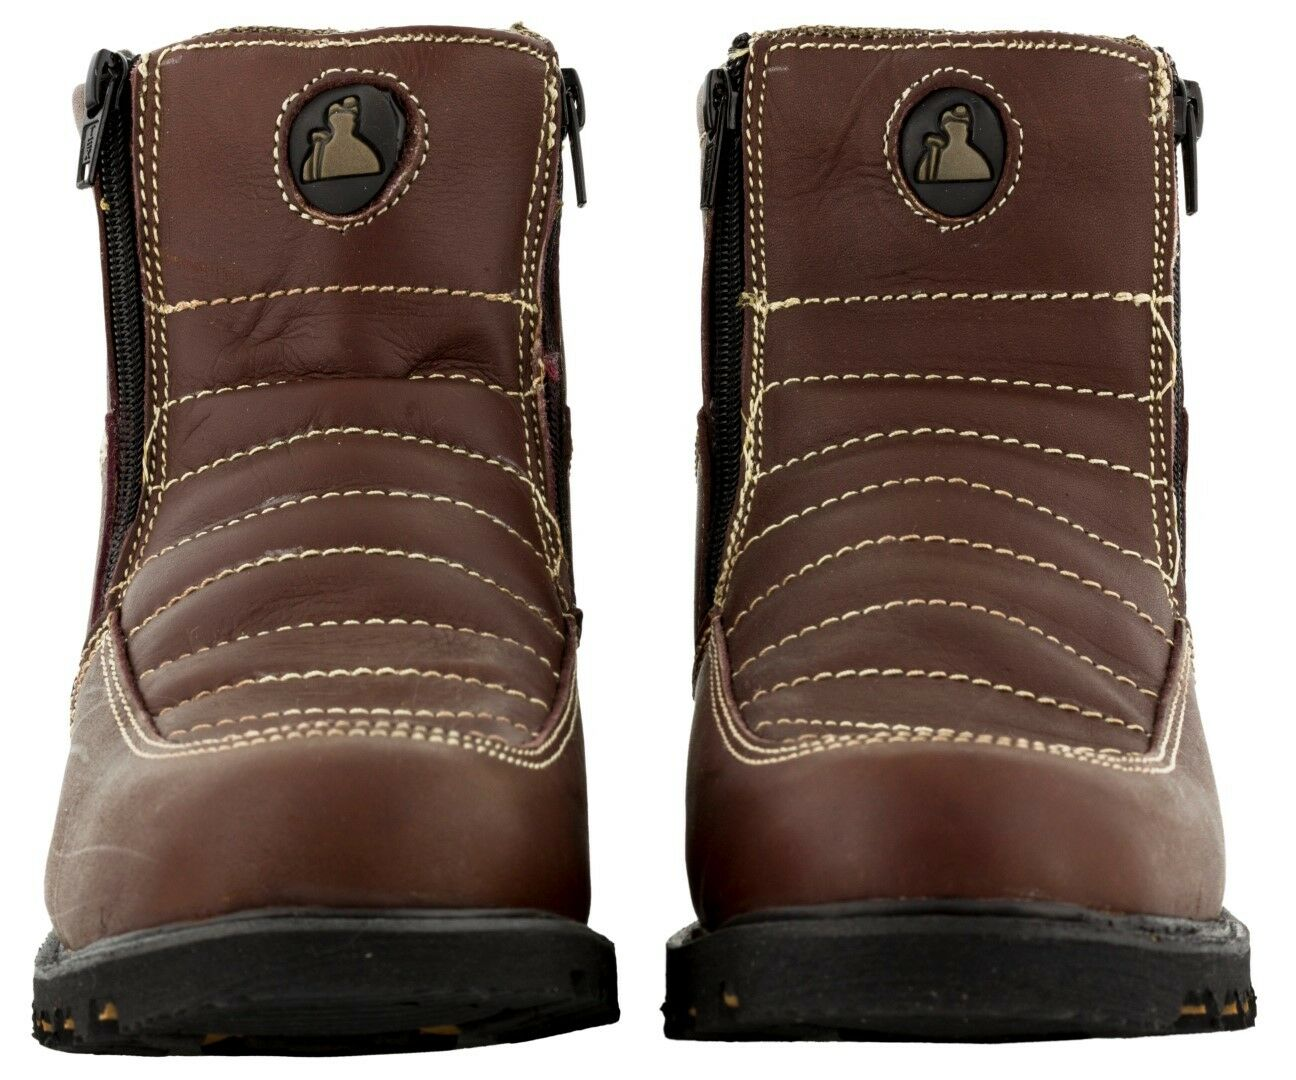 Work Uomo Strong Tough Durable Work  Construction Stiefel Schuhes Non Slip Sole Burgundy fc46e1